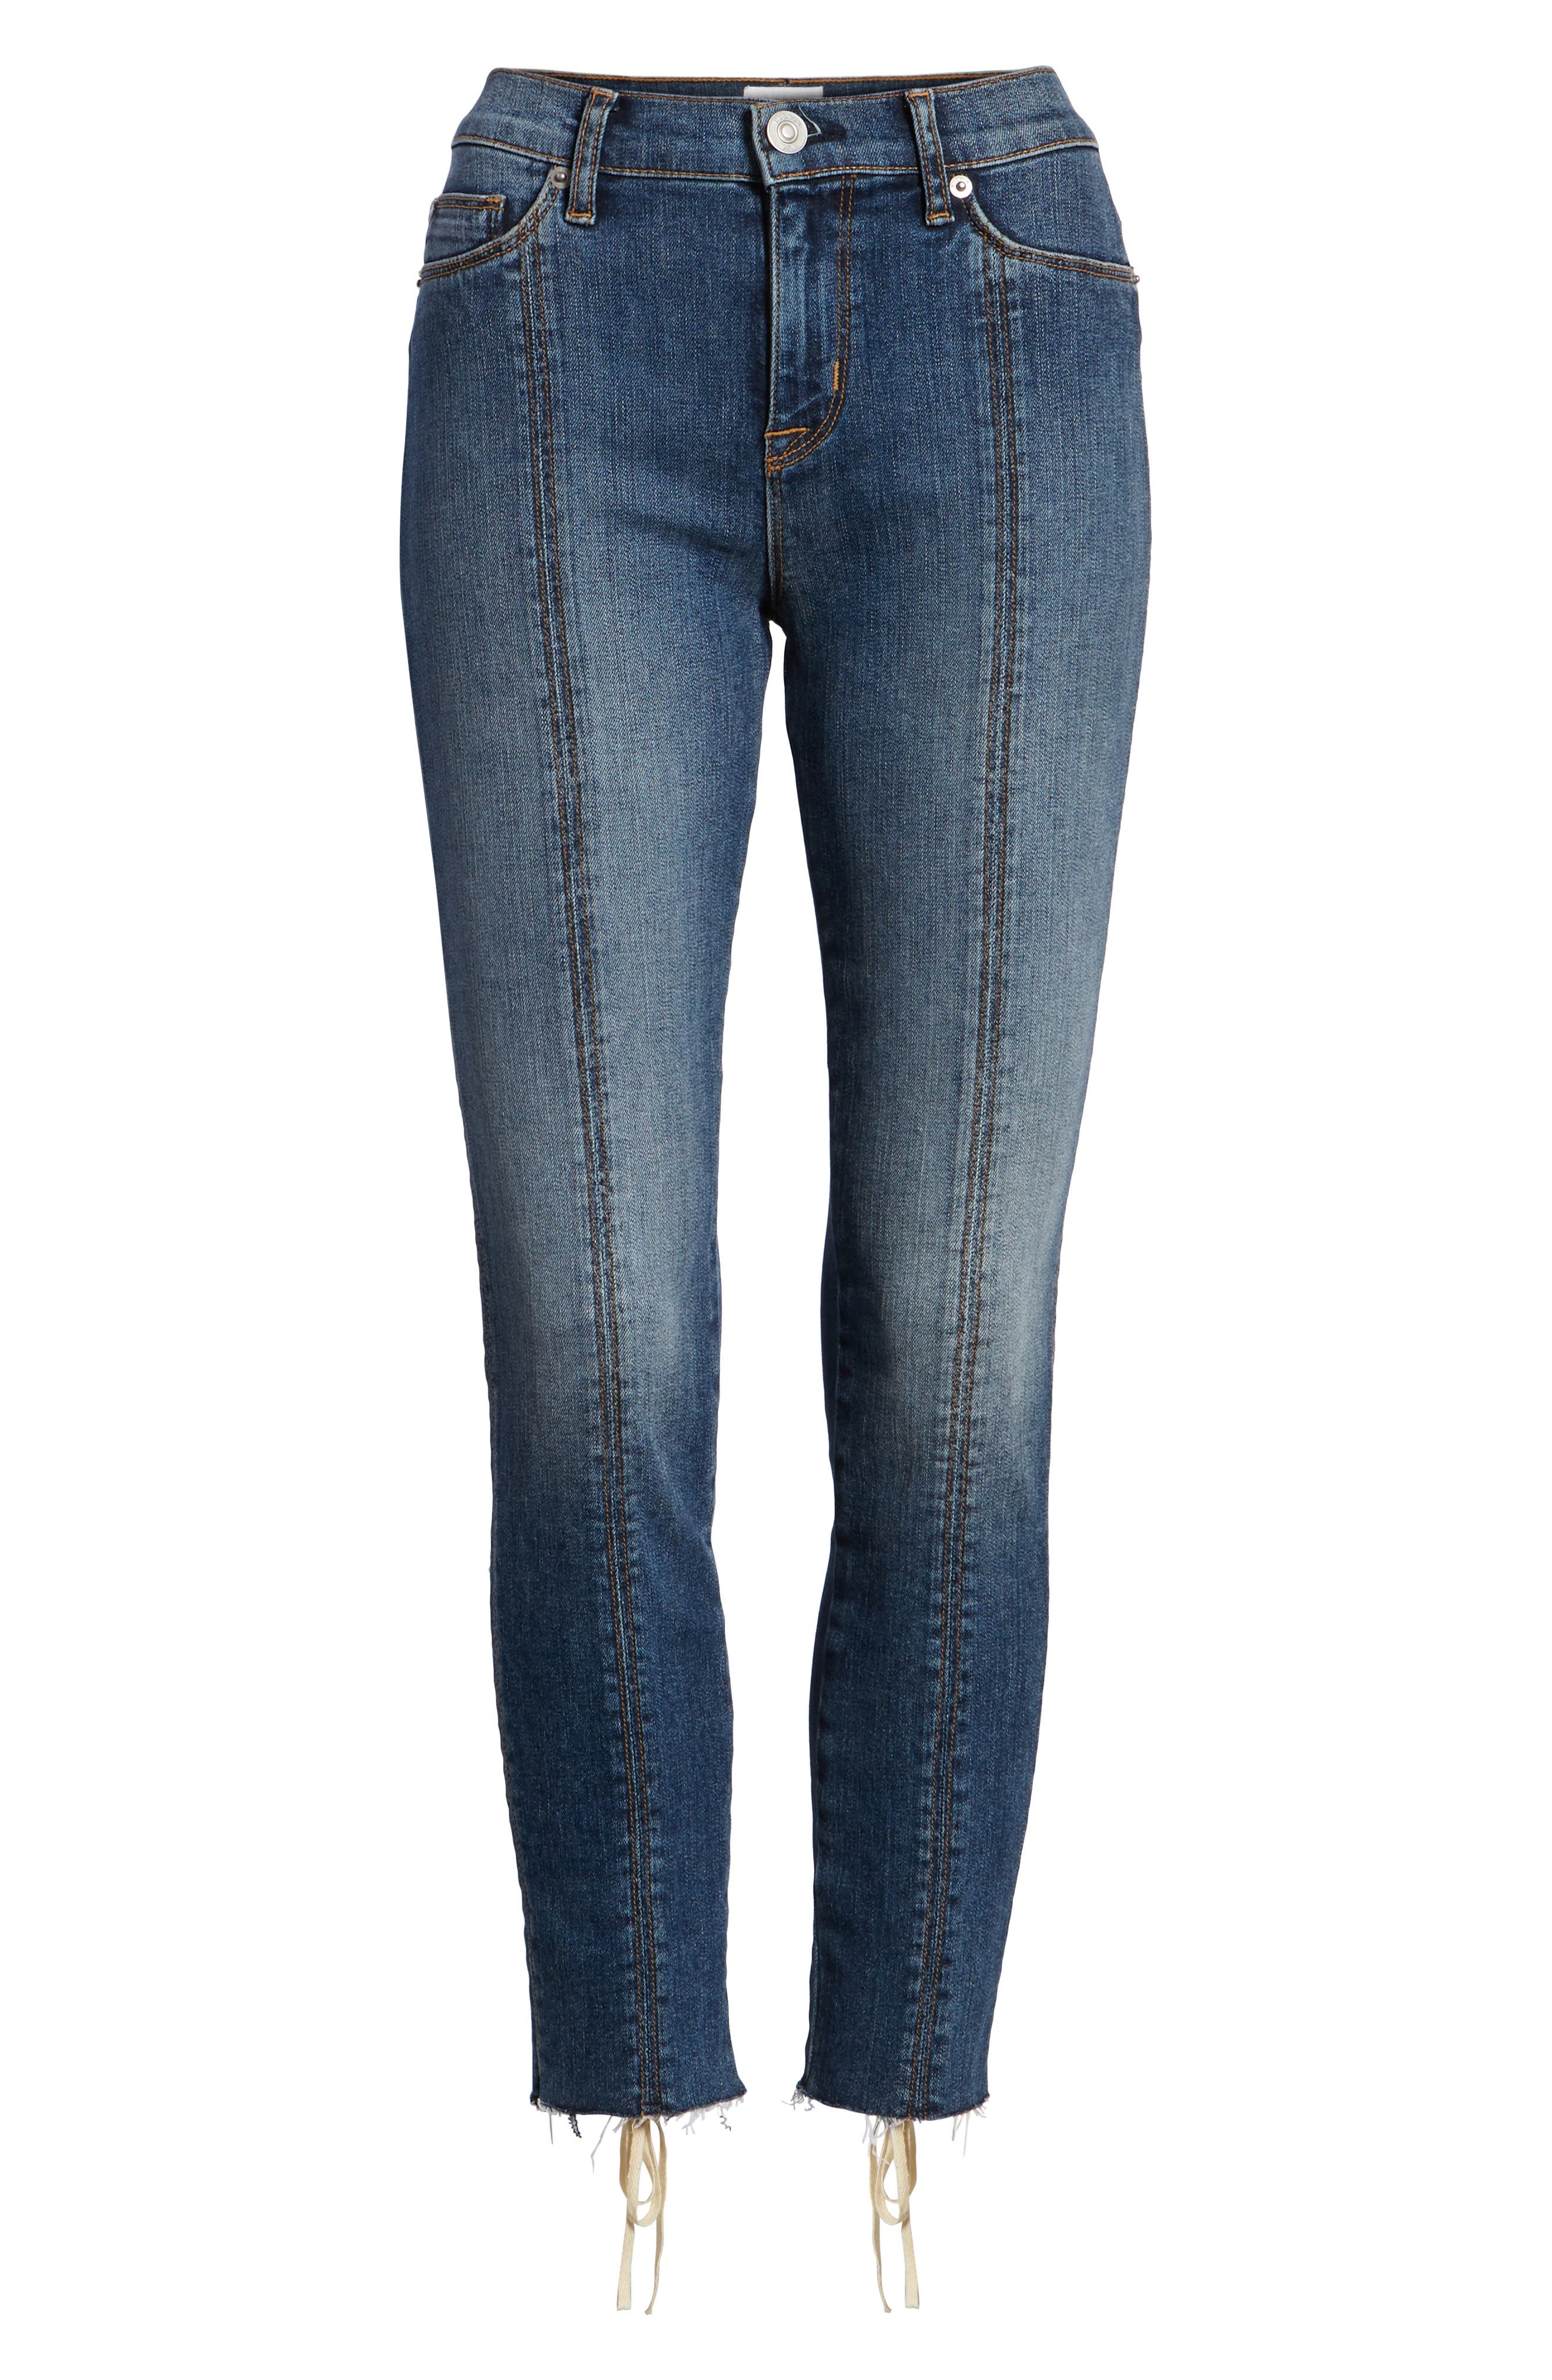 Nico Lace-Up Crop Skinny Jeans,                             Alternate thumbnail 7, color,                             421